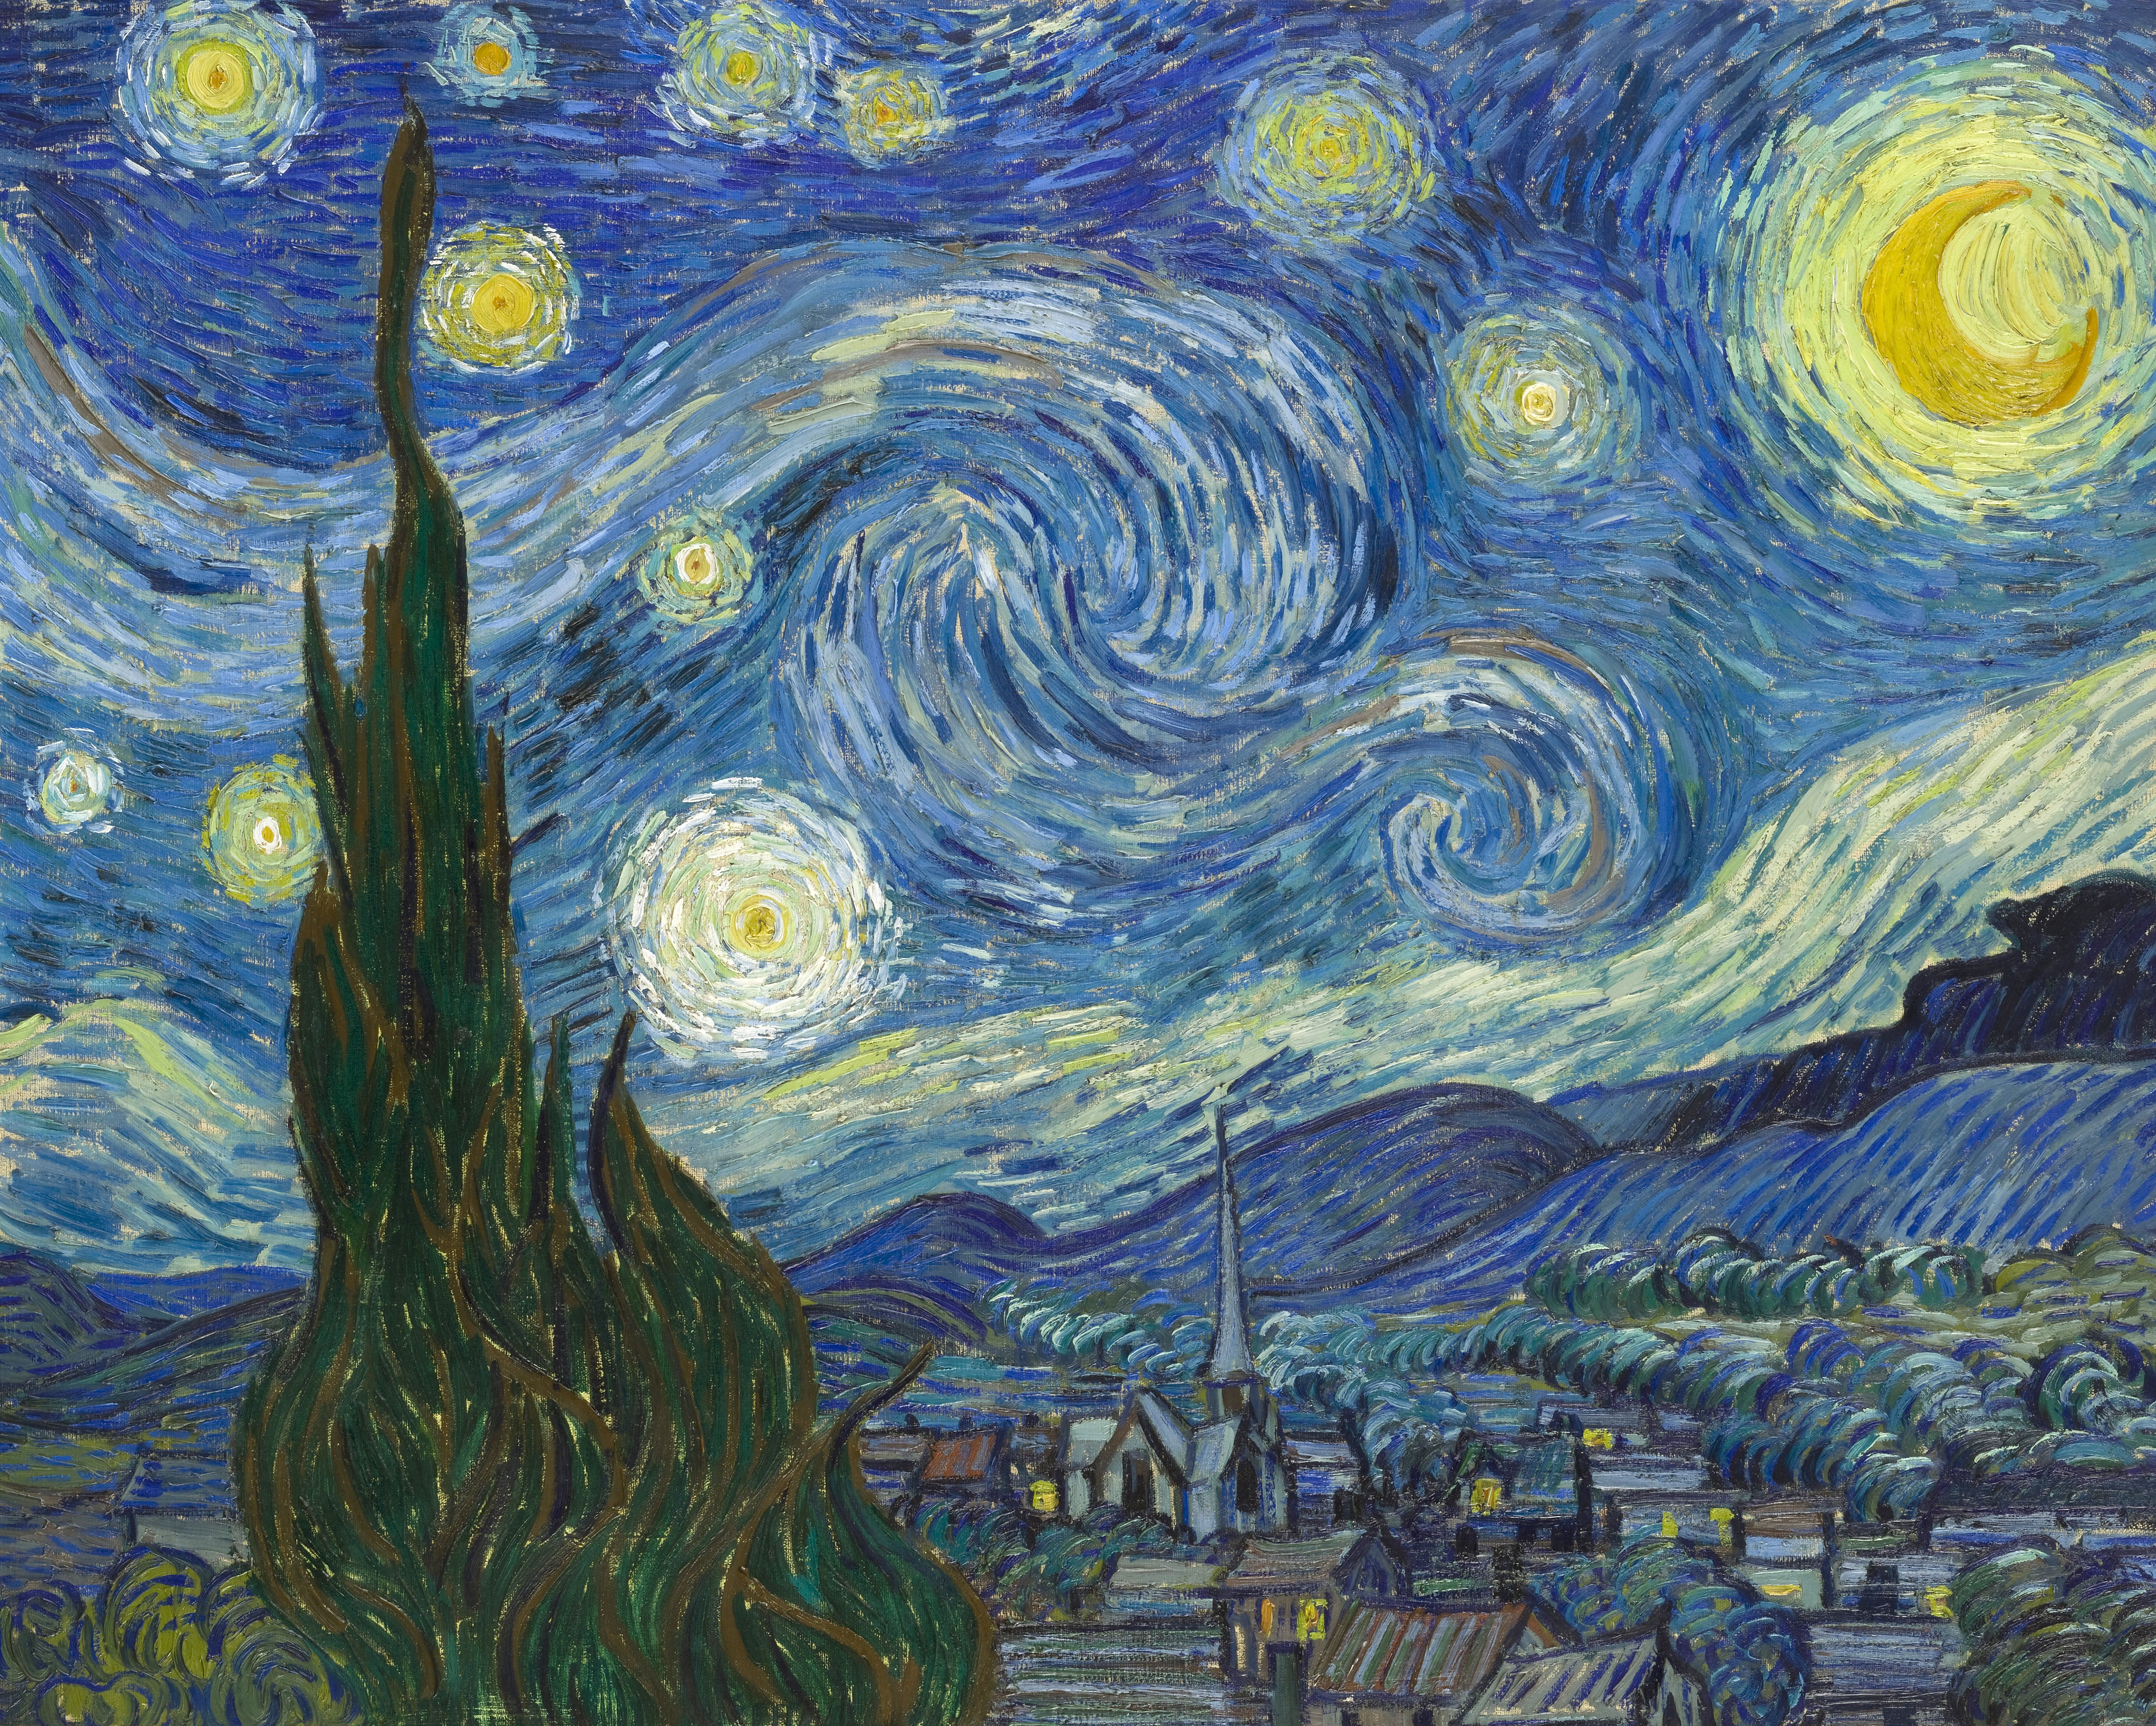 Van Gogh S Most Famous Paintings